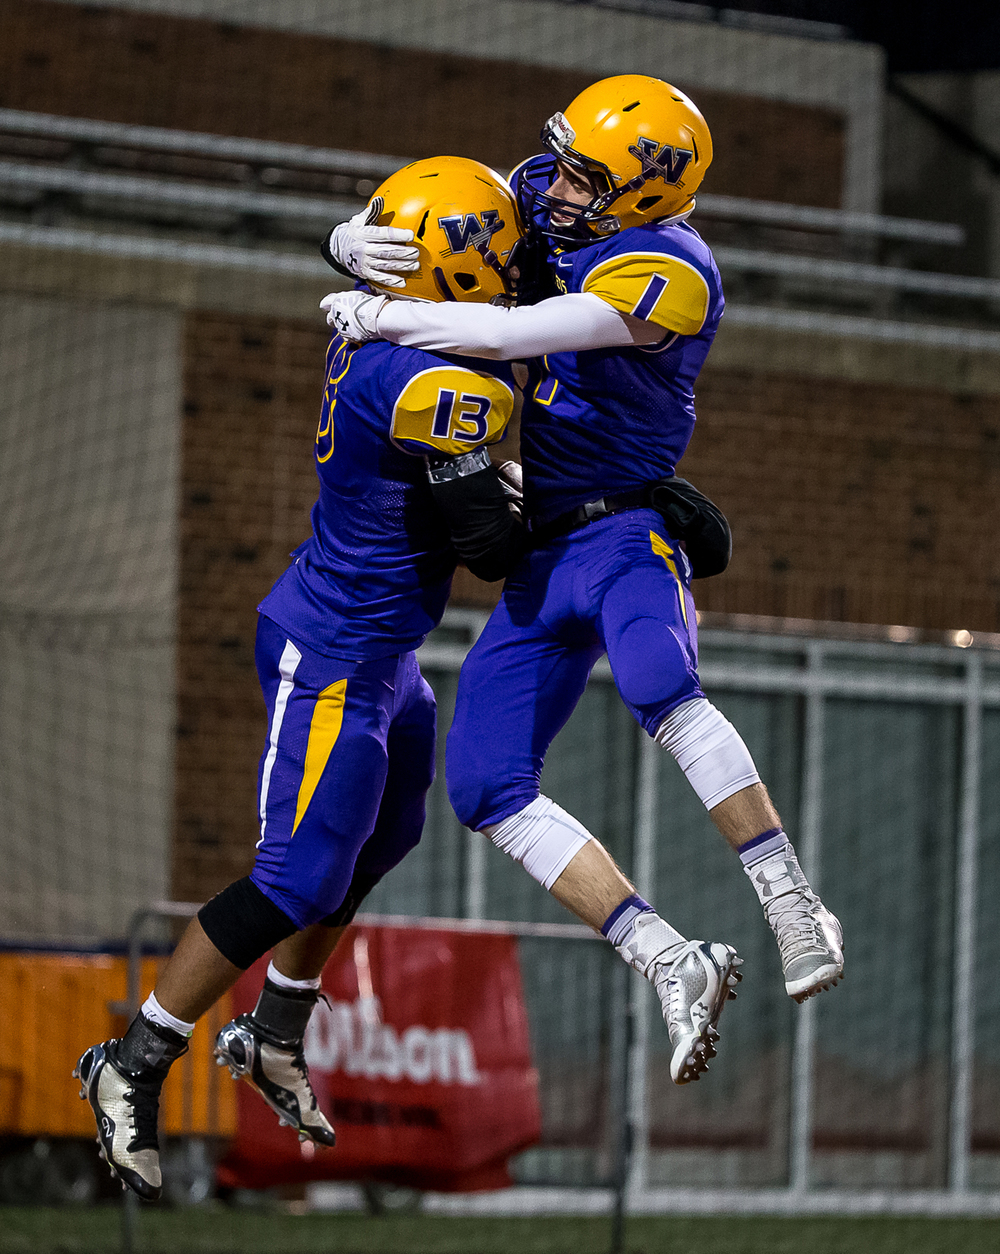 Williamsville's Jace Franklin (13) celebrates his 65-yard touchdown with Williamsville's Daniel Daykin (1) to tie the game against Wilmington in the second half during the IHSA Class 3A state championship game at Memorial Stadium, Friday, Nov. 28, 2014, in Champaign, Ill. Justin L. Fowler/The State Journal-Register